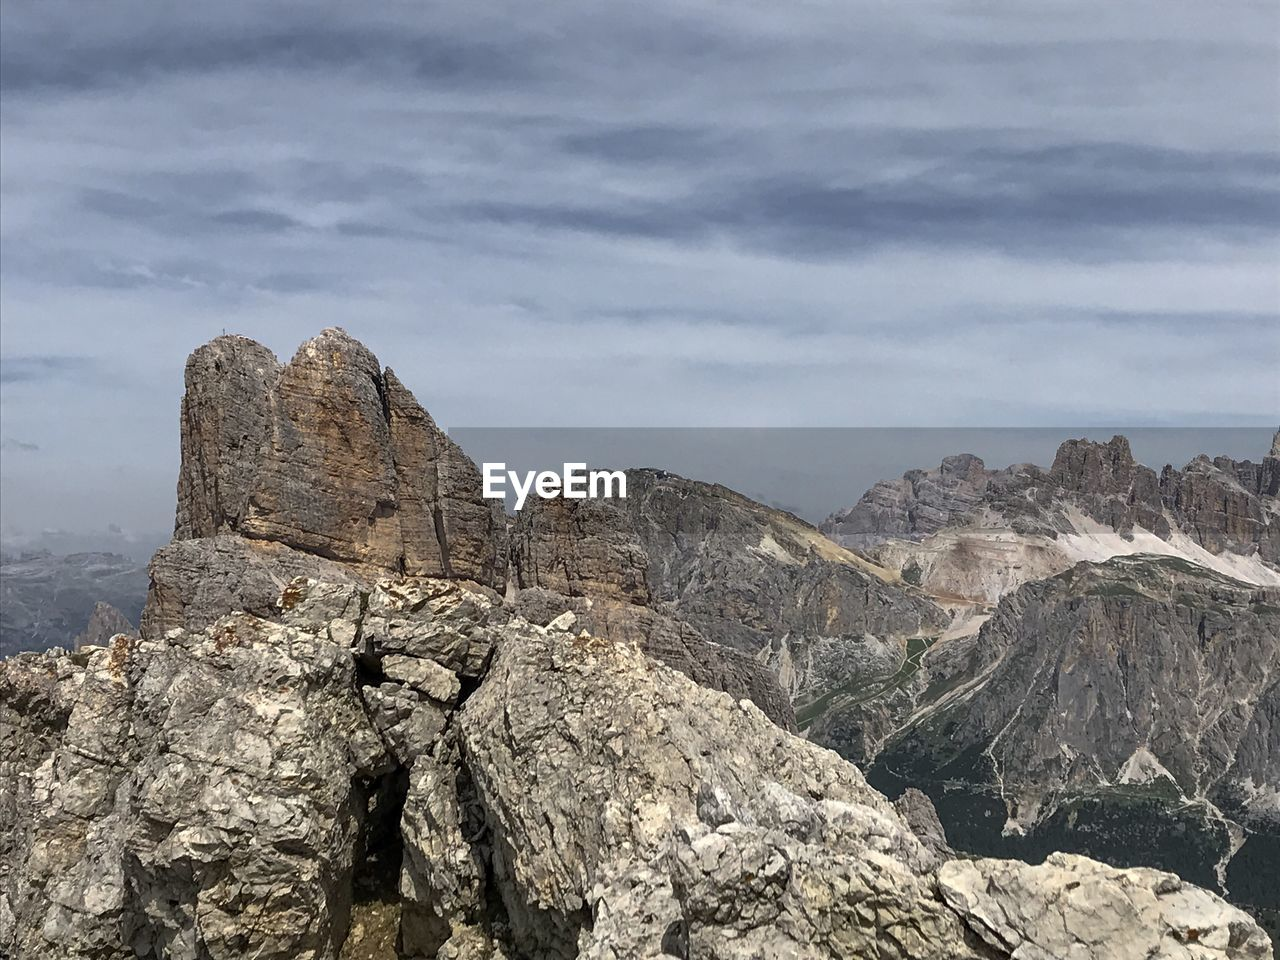 rock, rock - object, cloud - sky, mountain, solid, rock formation, sky, scenics - nature, mountain range, beauty in nature, tranquil scene, non-urban scene, nature, tranquility, formation, physical geography, rocky mountains, no people, day, geology, outdoors, mountain peak, eroded, arid climate